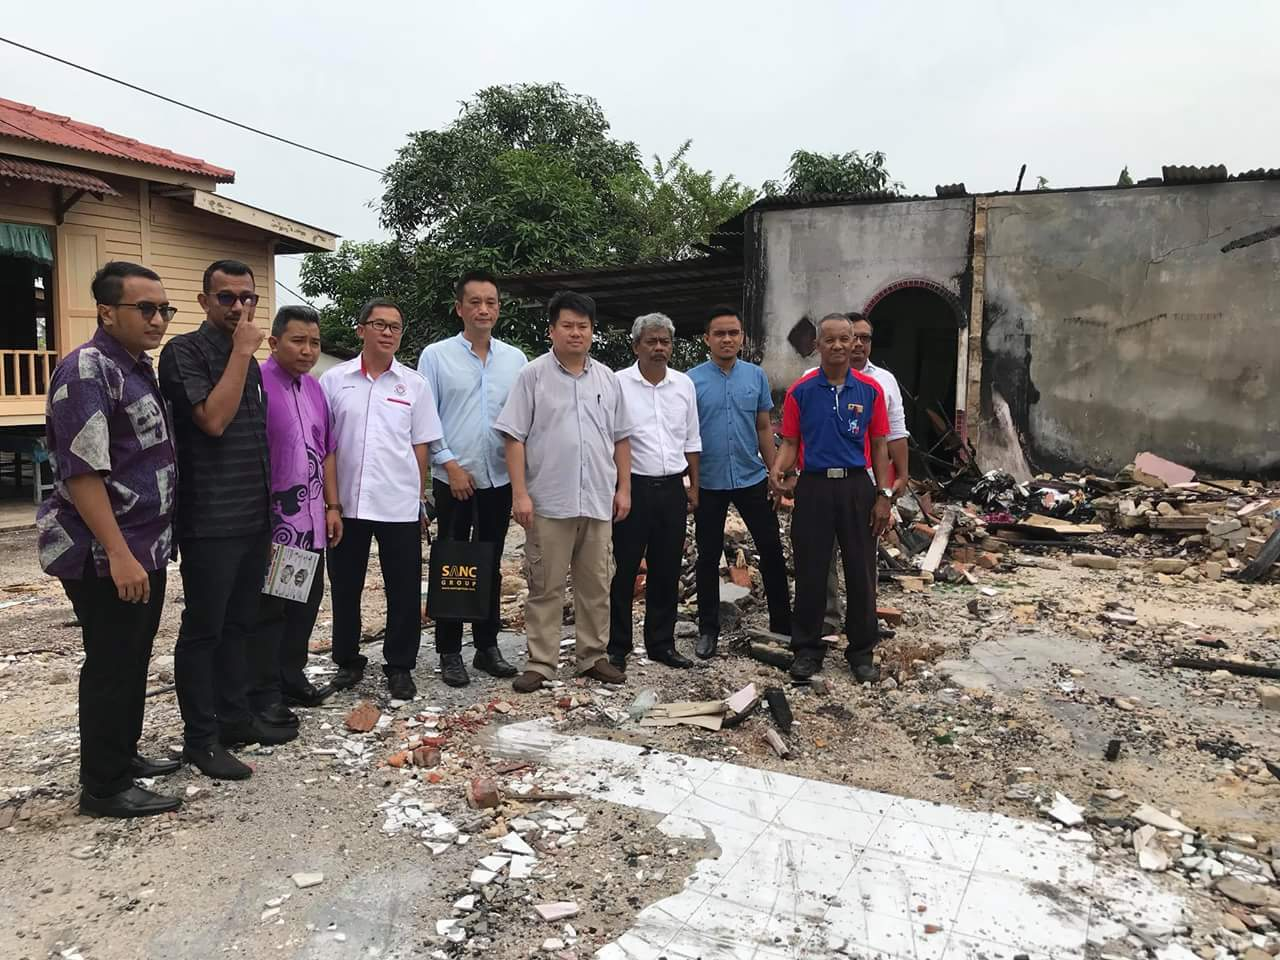 YB. Damien and Mr Joji Yang visit the site of the burning house.